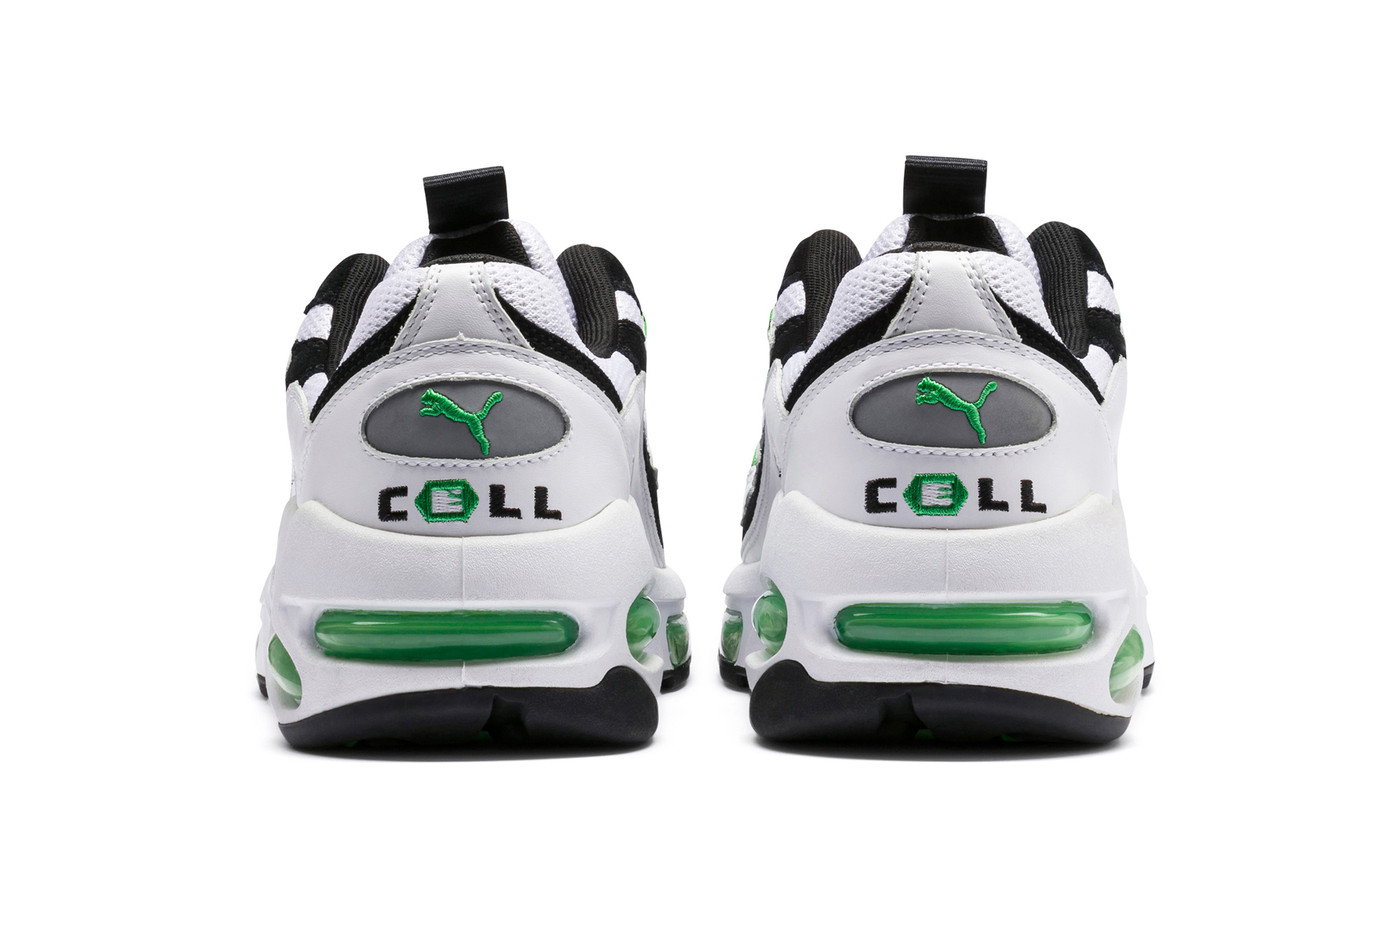 puma-cell-endura-release-white-surf-the-web-3